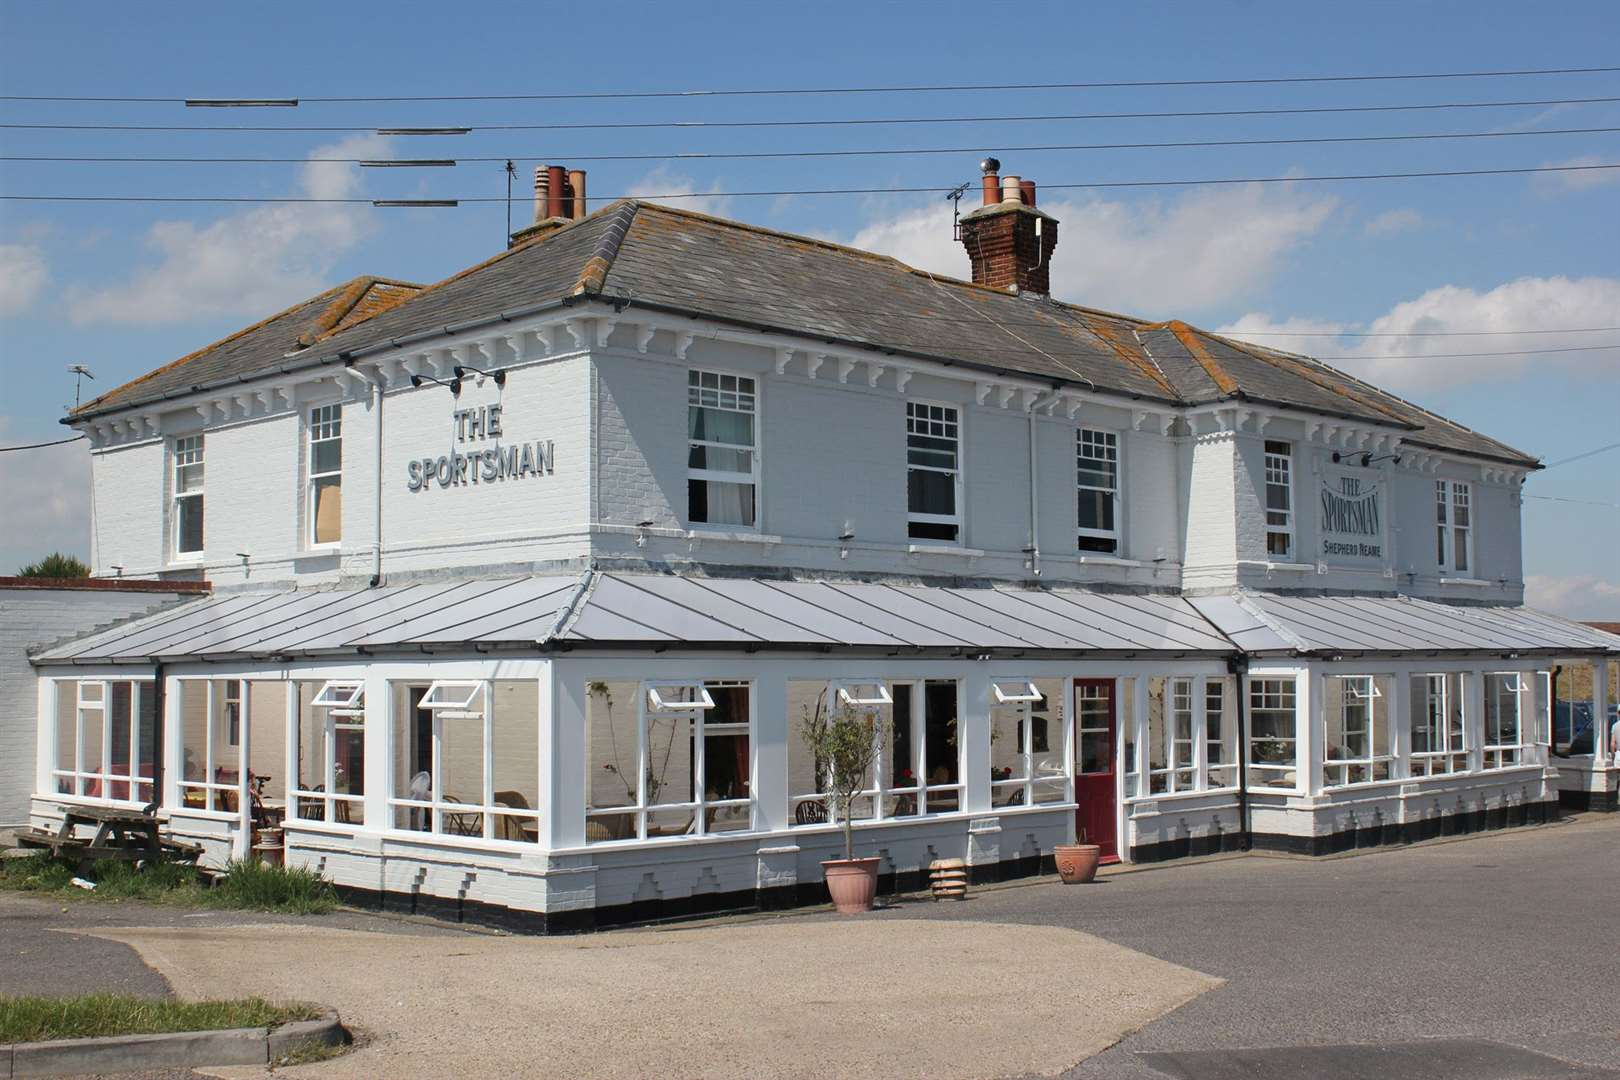 The Sportsman in Seasalter (12136935)